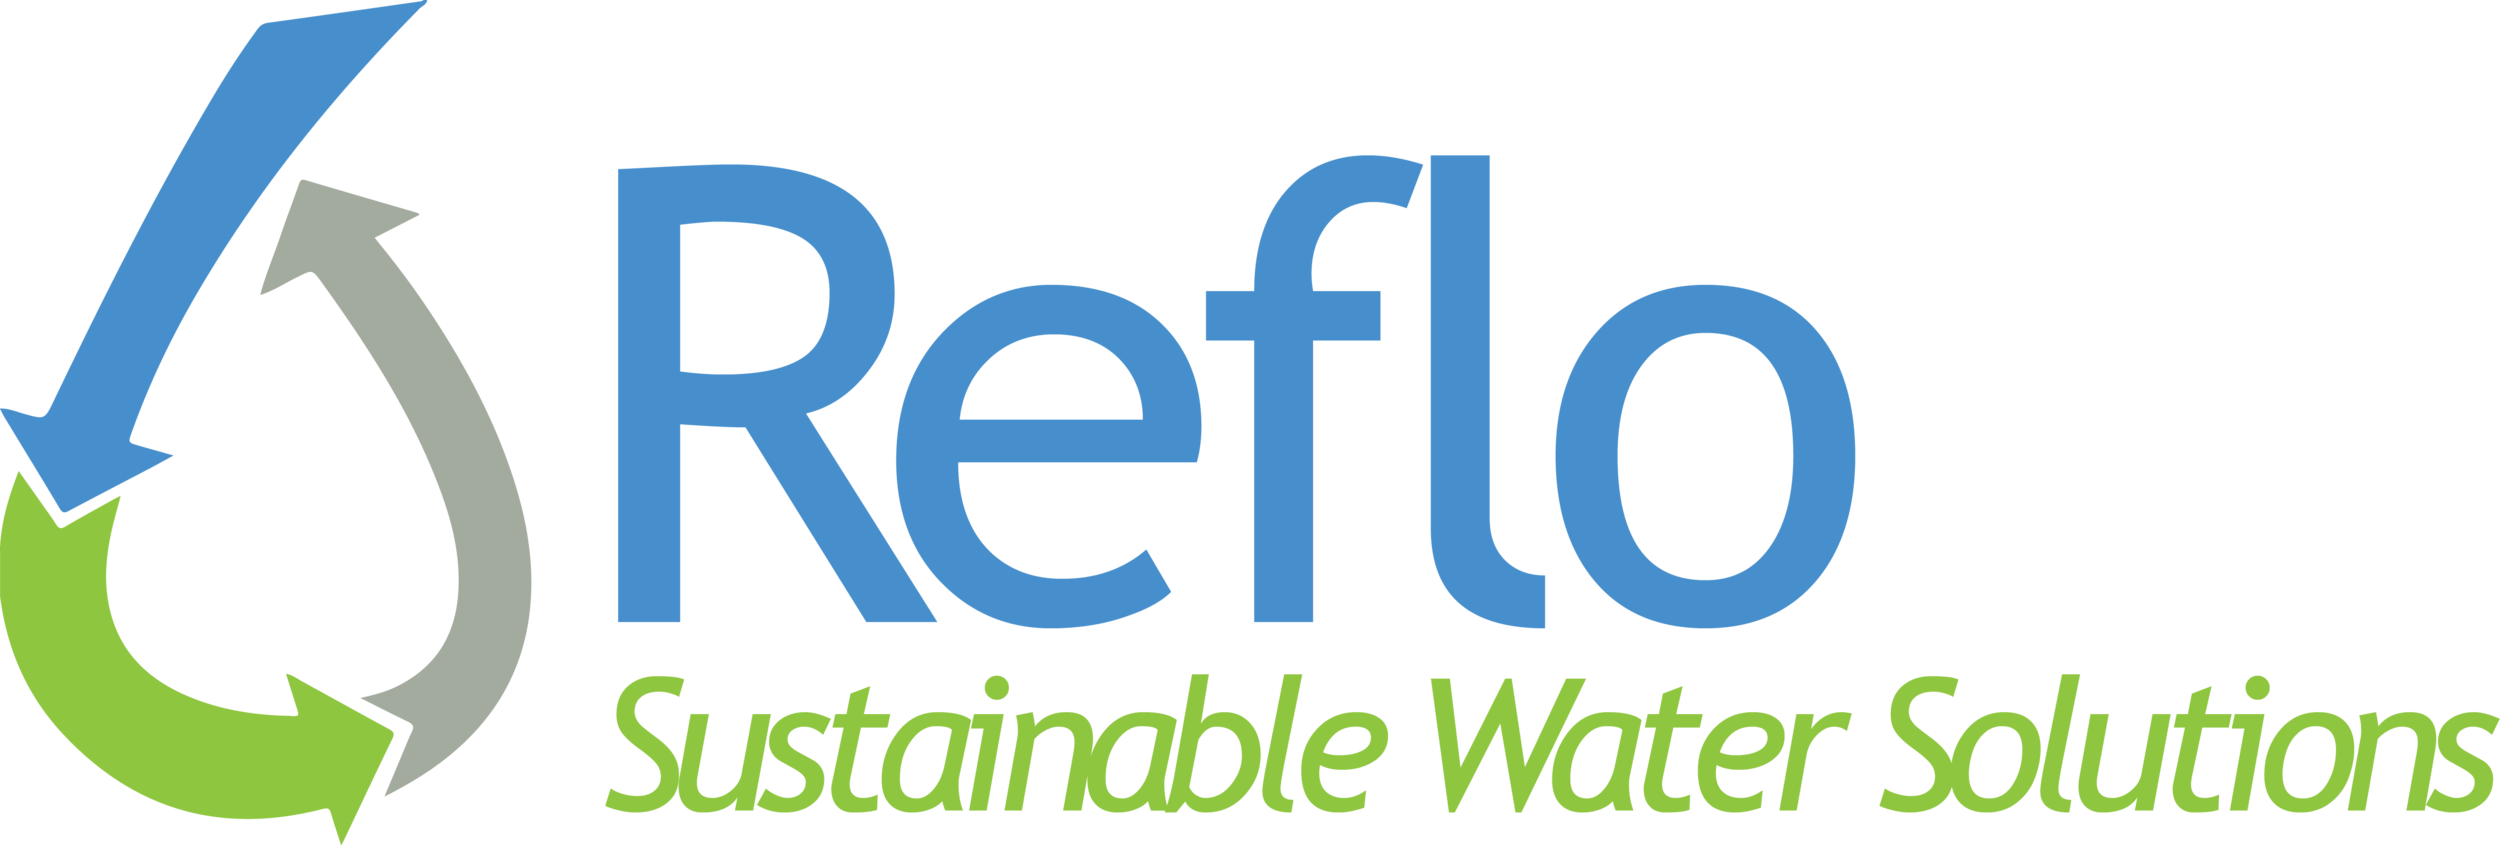 Reflo Logo - Final.png